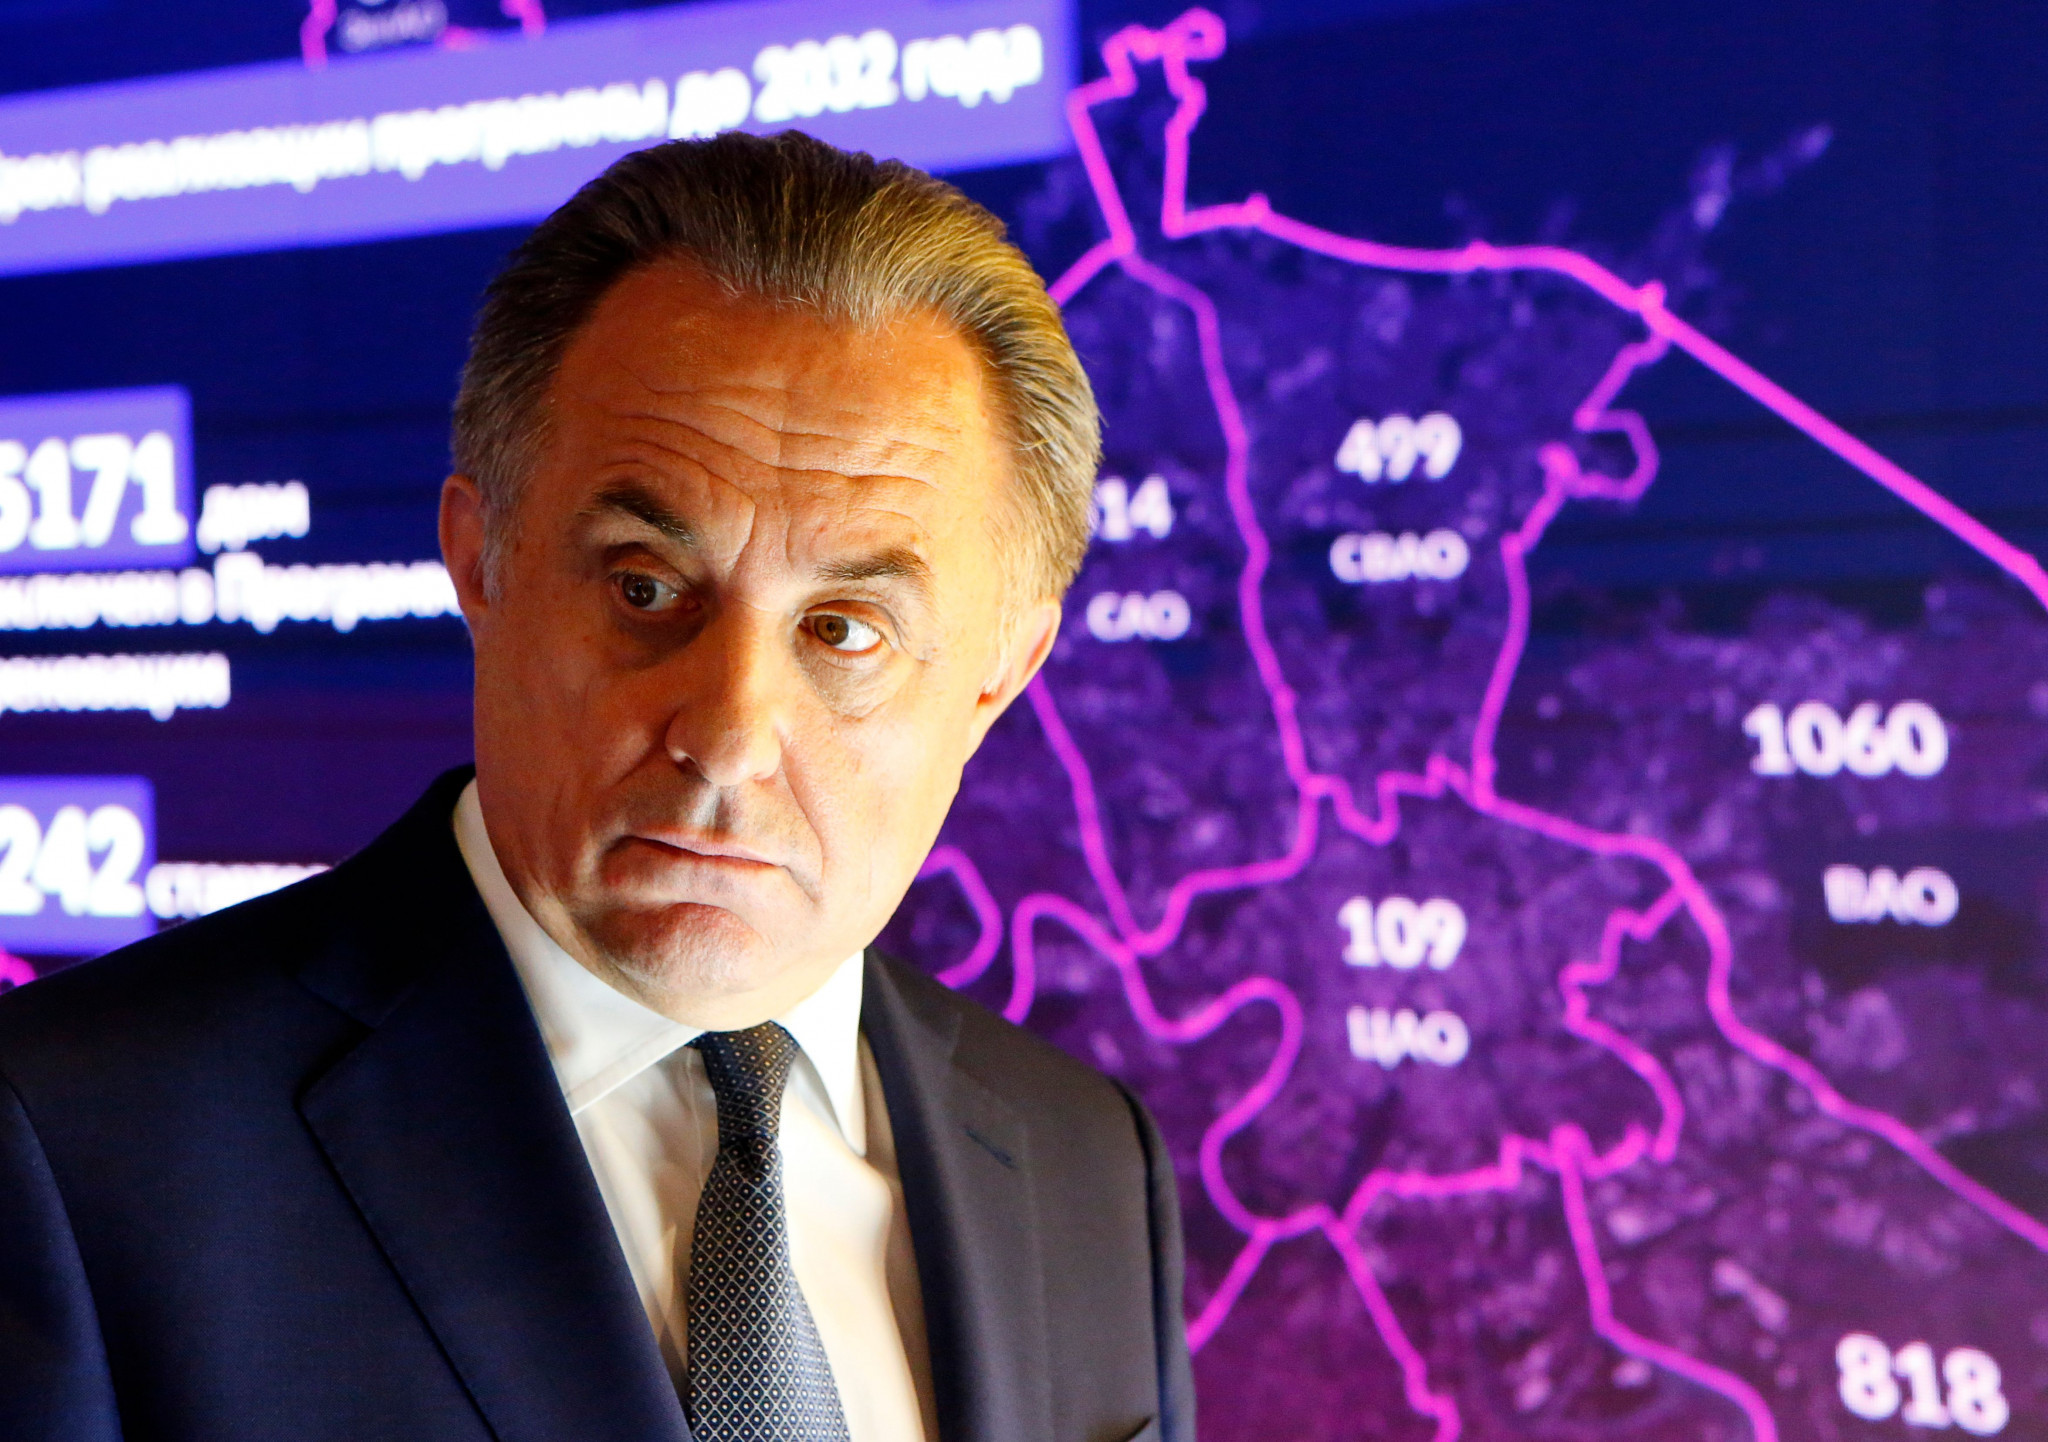 Confusion surrounds Vitaly Mutko's return to the position of Russian Football Union President ©Getty Images